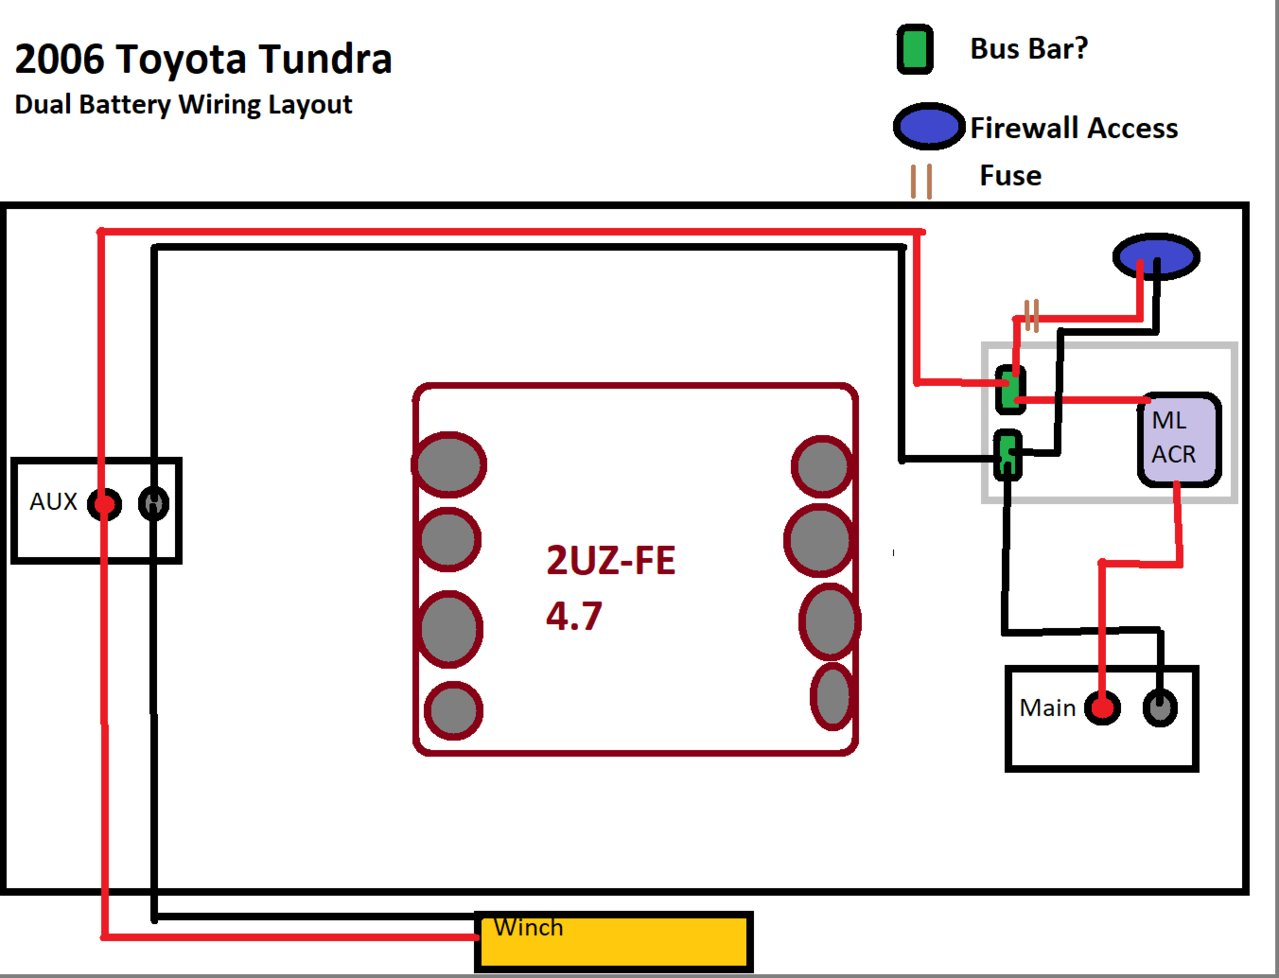 hight resolution of can you connect a bs ml acr to a bus bar wiring layout help needed questions